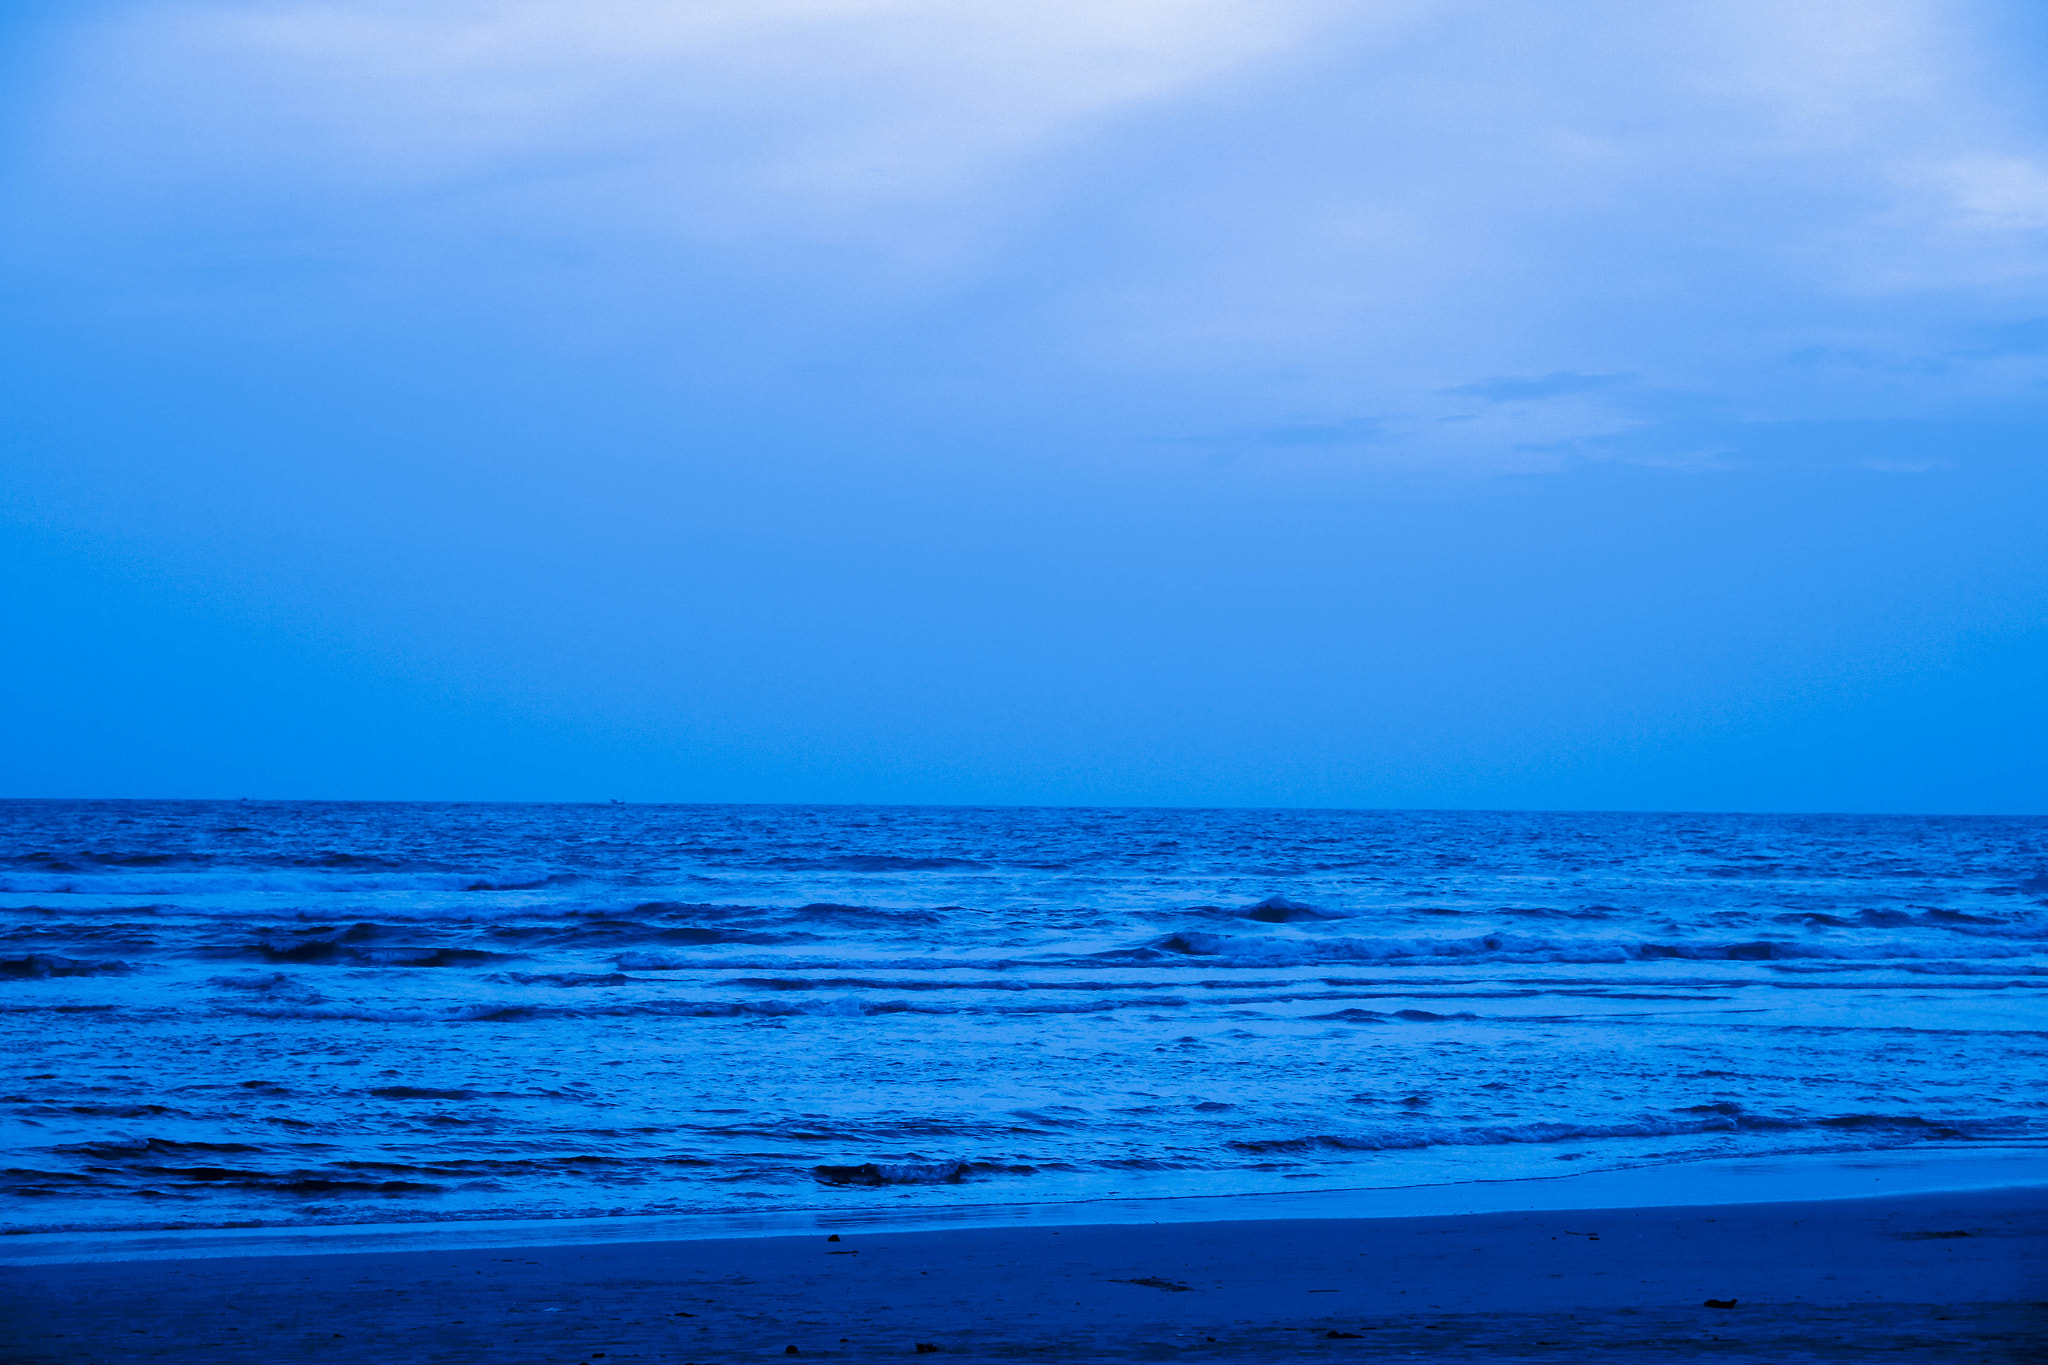 Photograph Blue Sea by Sudeep Devkota on 500px